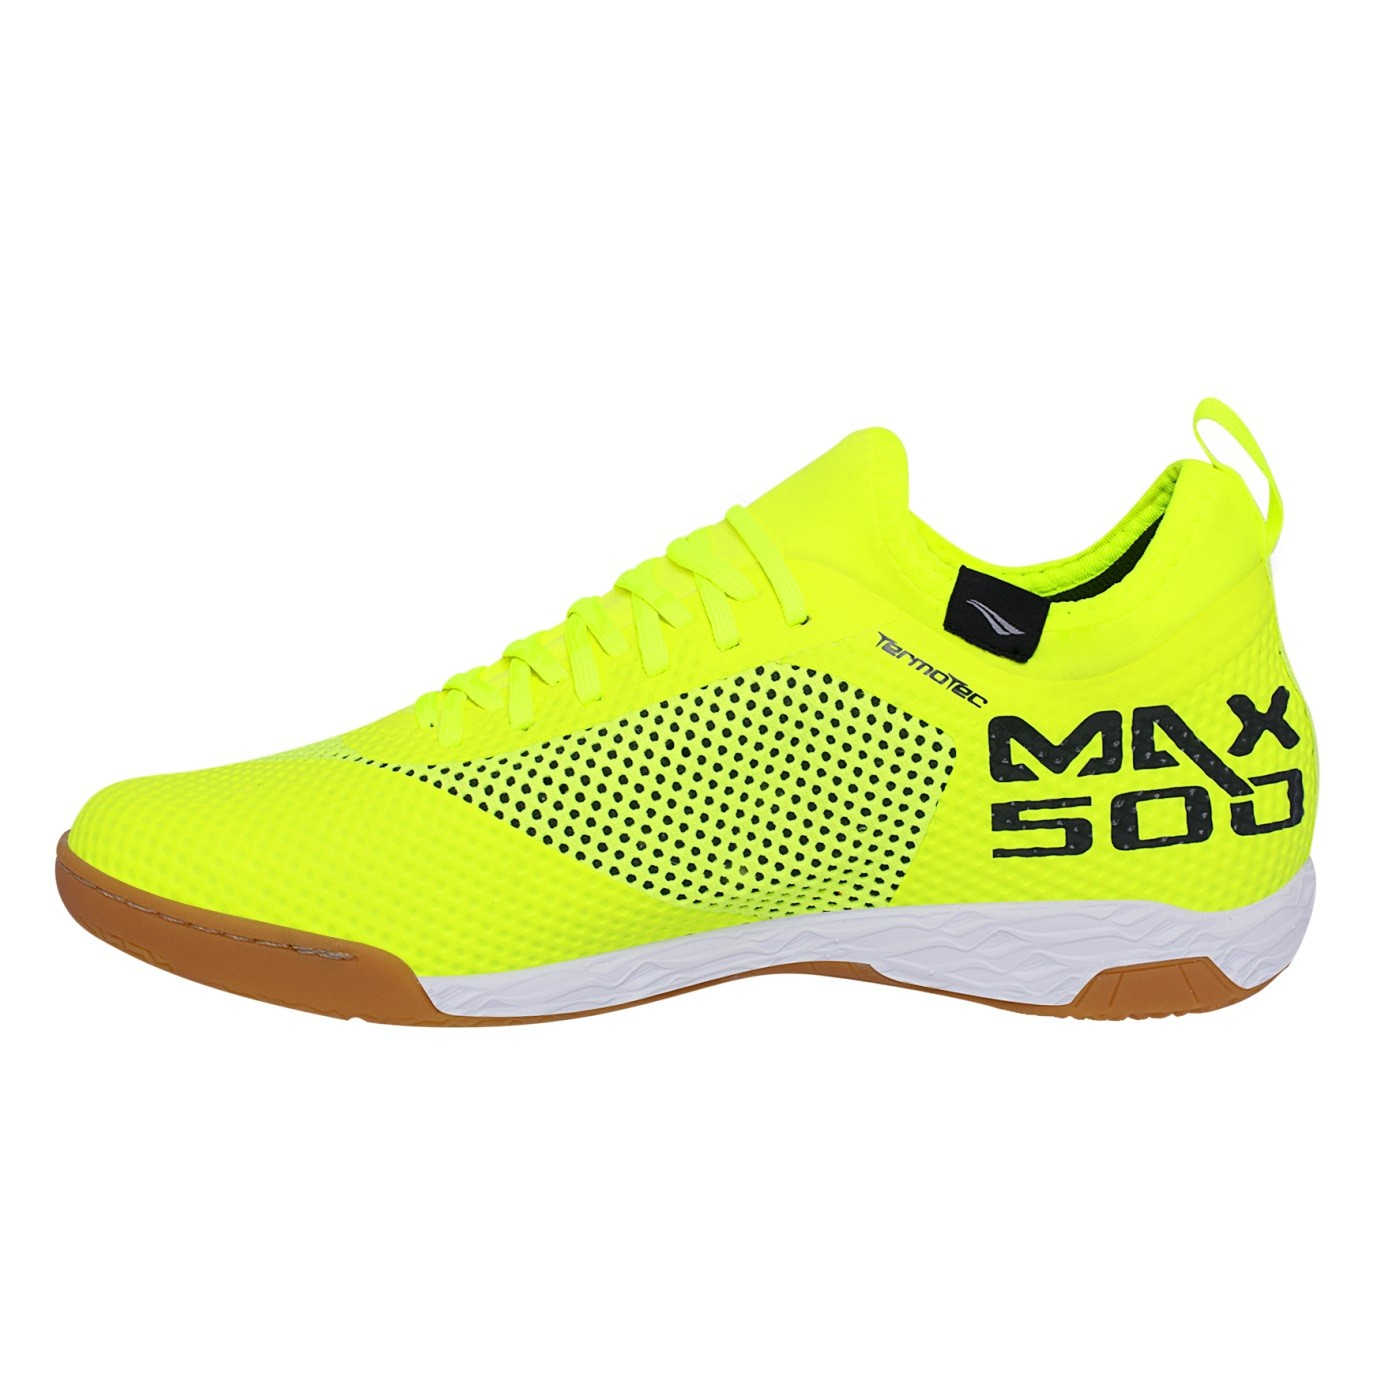 Chuteira Penalty Max 500 IX Locker Futsal